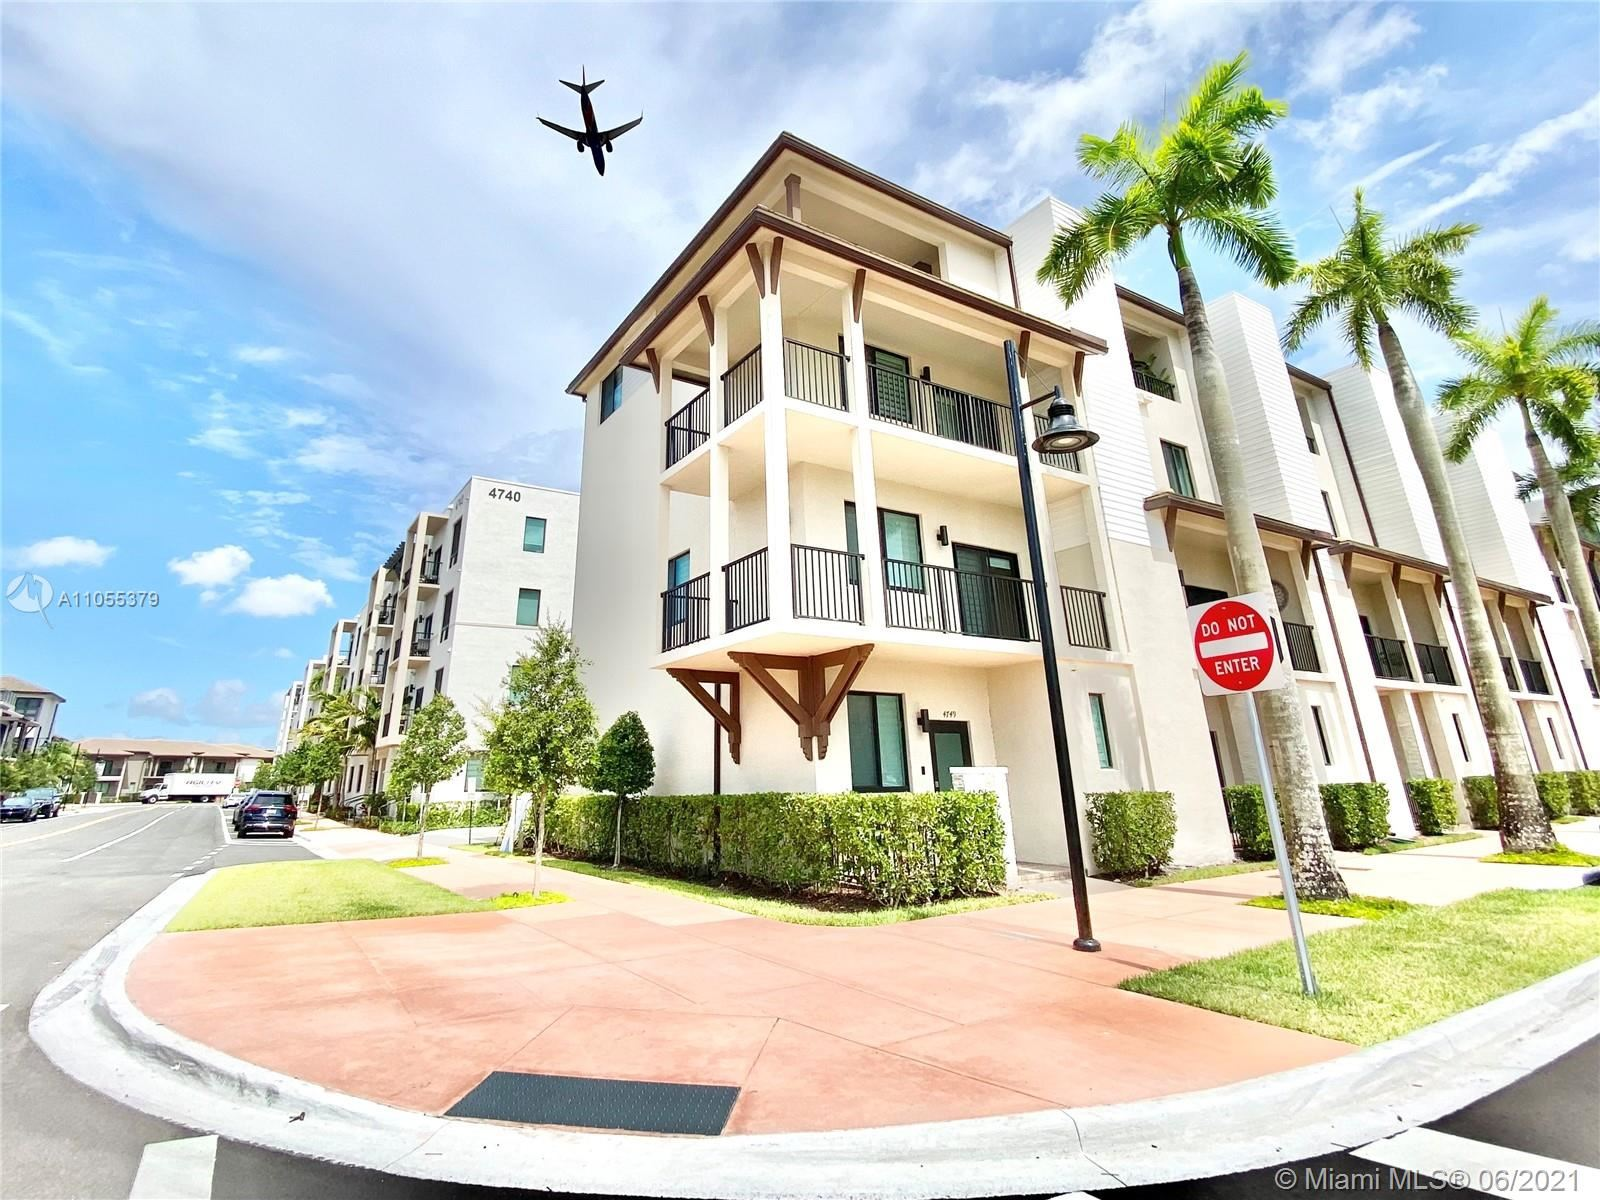 4749 NW 85th Ave #4749, Doral, FL 33166 - #: A11055379